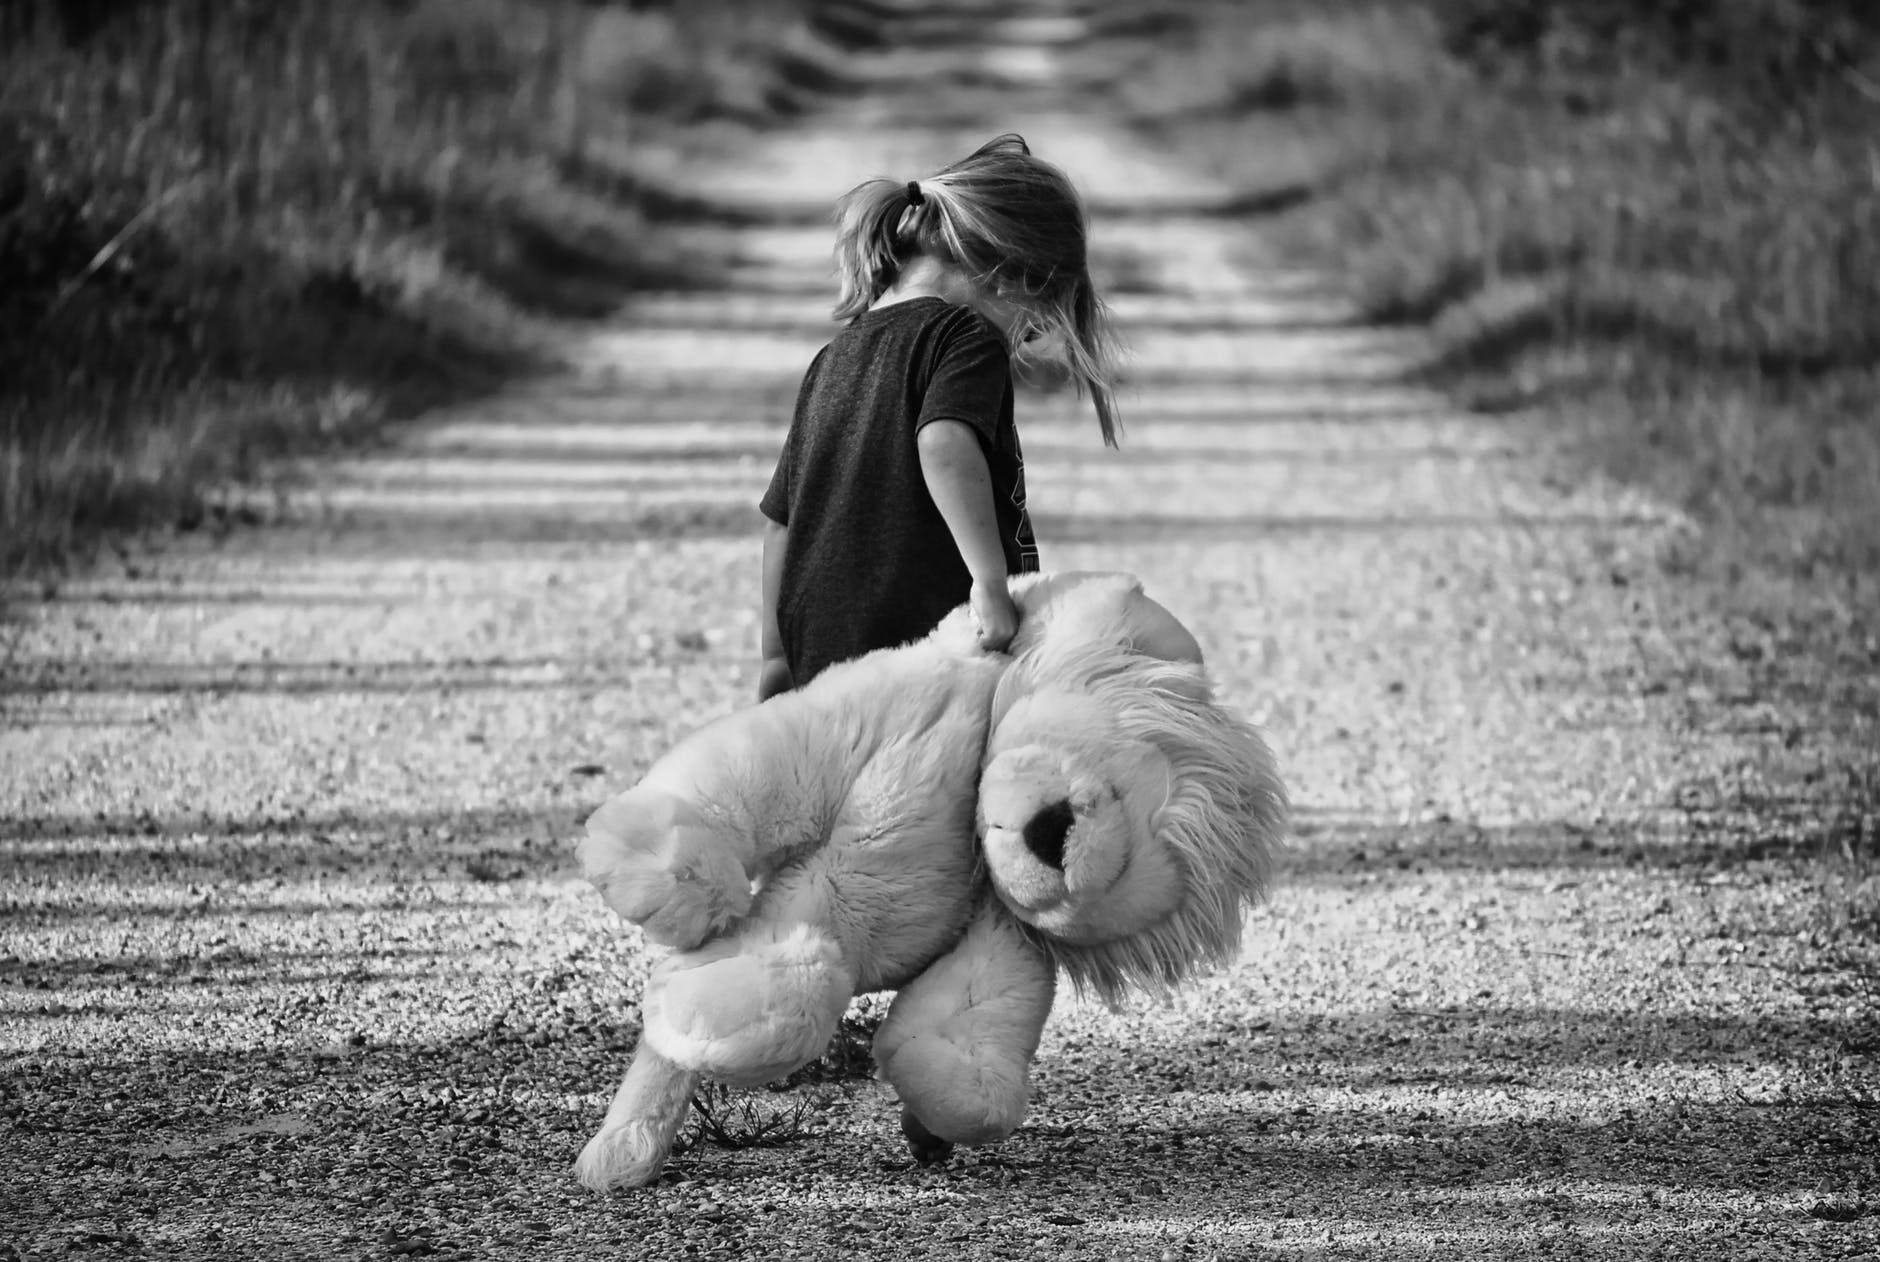 Black and white photo of a little girl walking down a path with her giant teddy bear